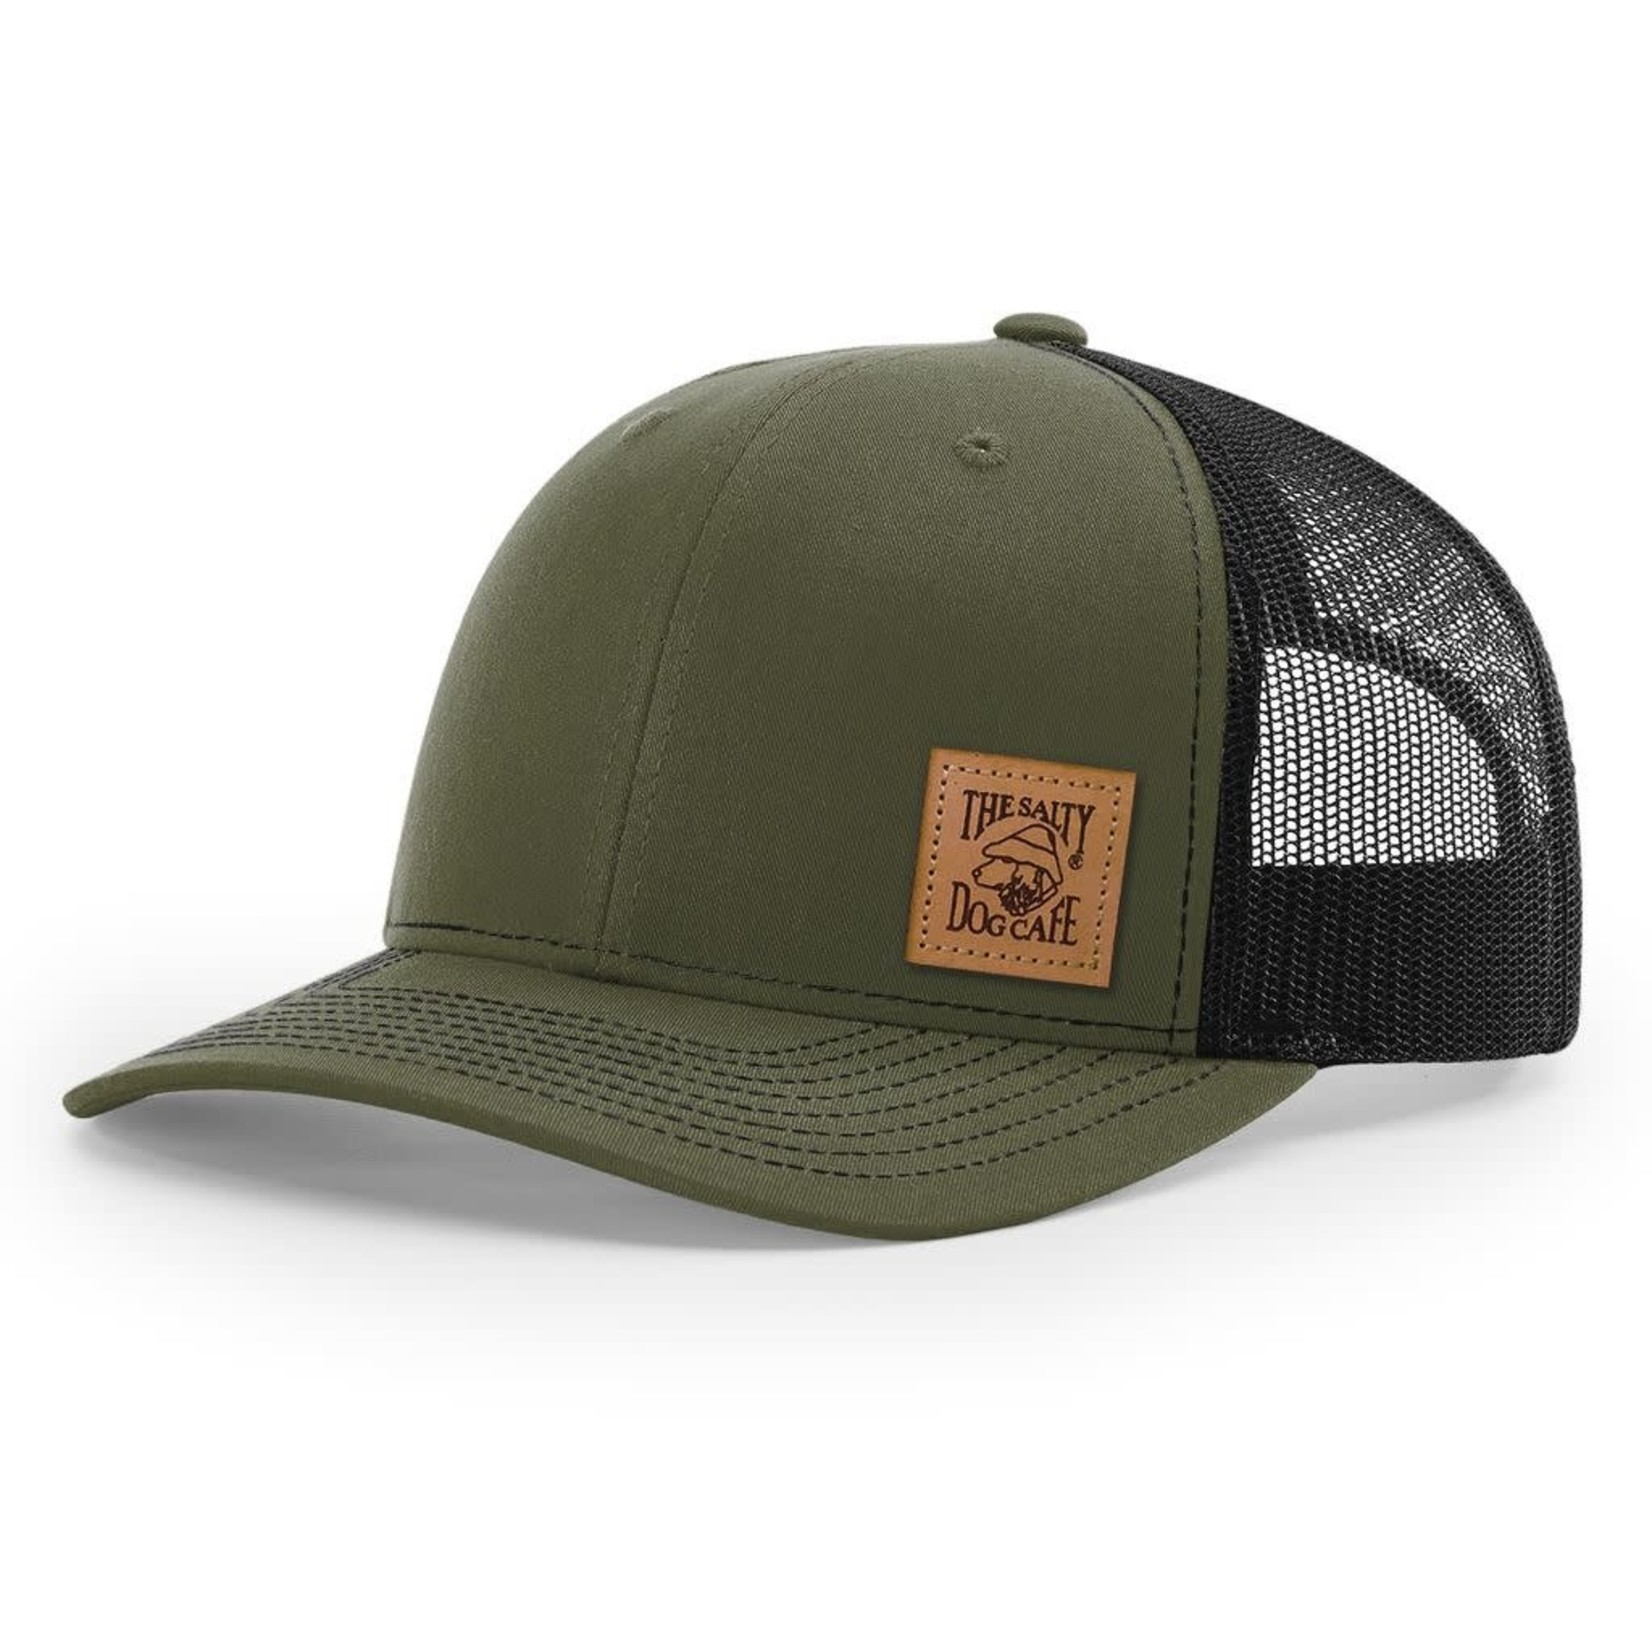 Trucker - Leather Patch, Loden/Black, Adult